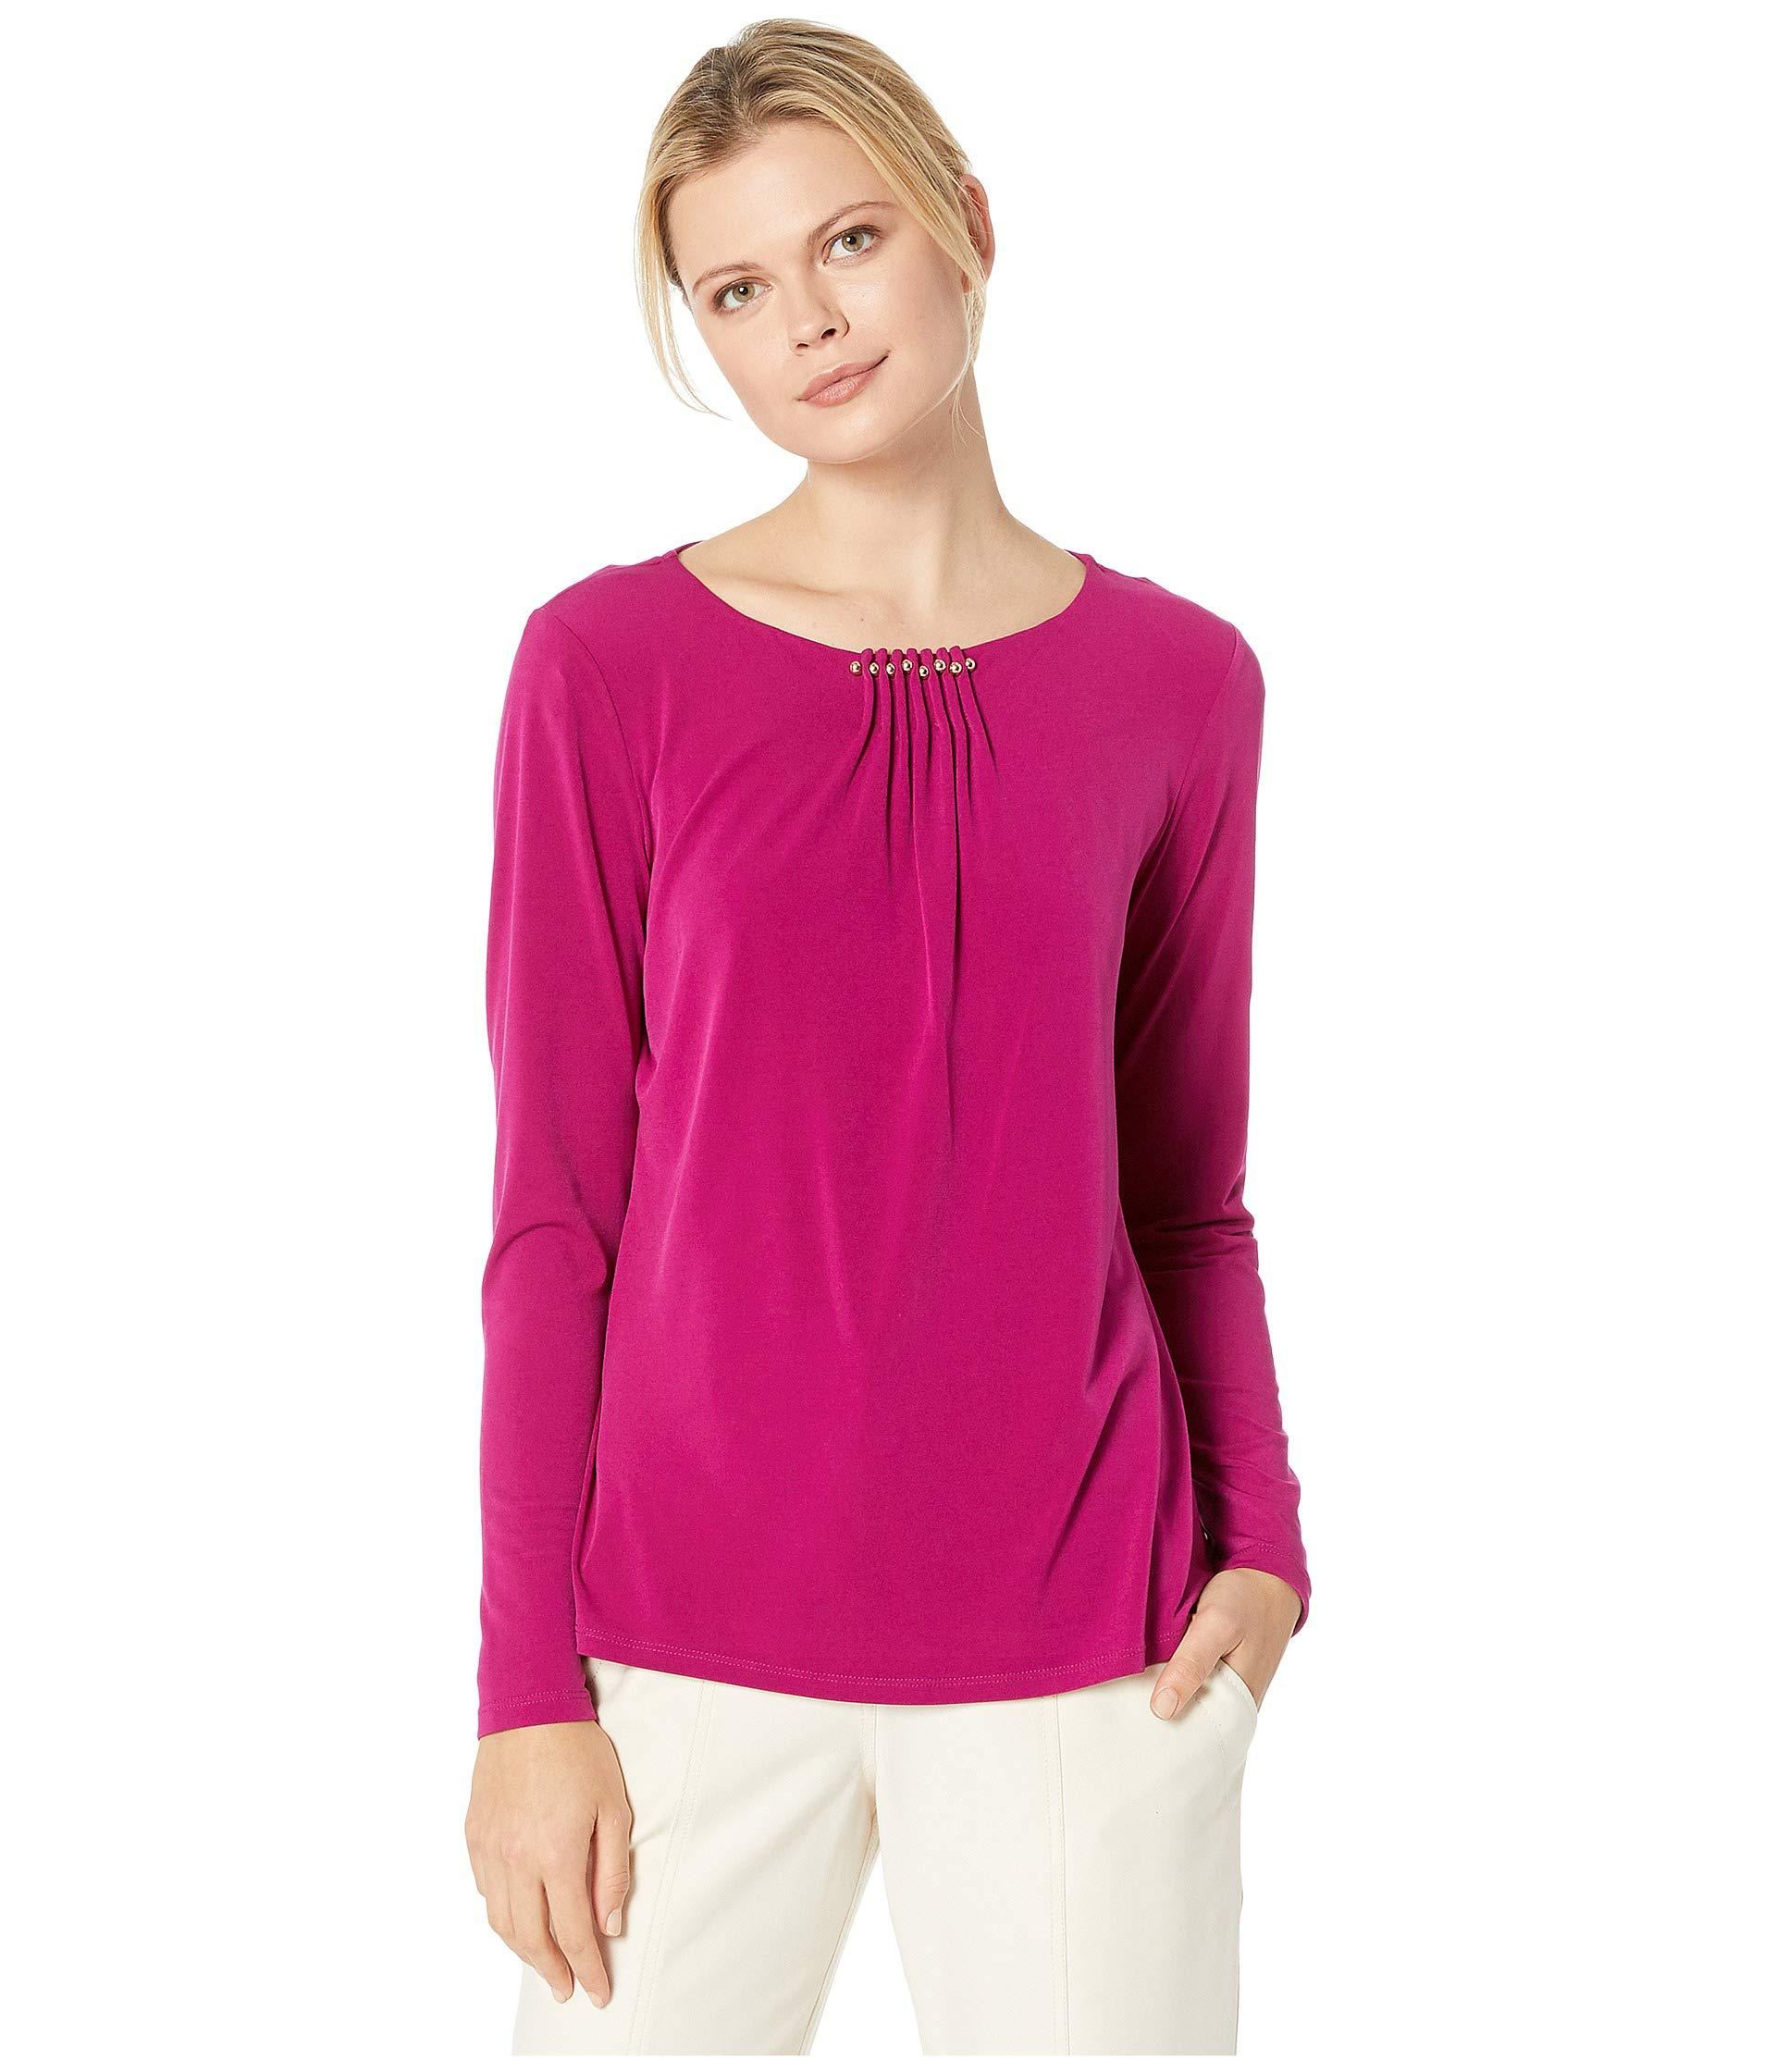 02580fdc39335 Lyst - Ivanka Trump Long Sleeve Matte Jersey Chain Hardware Top ...